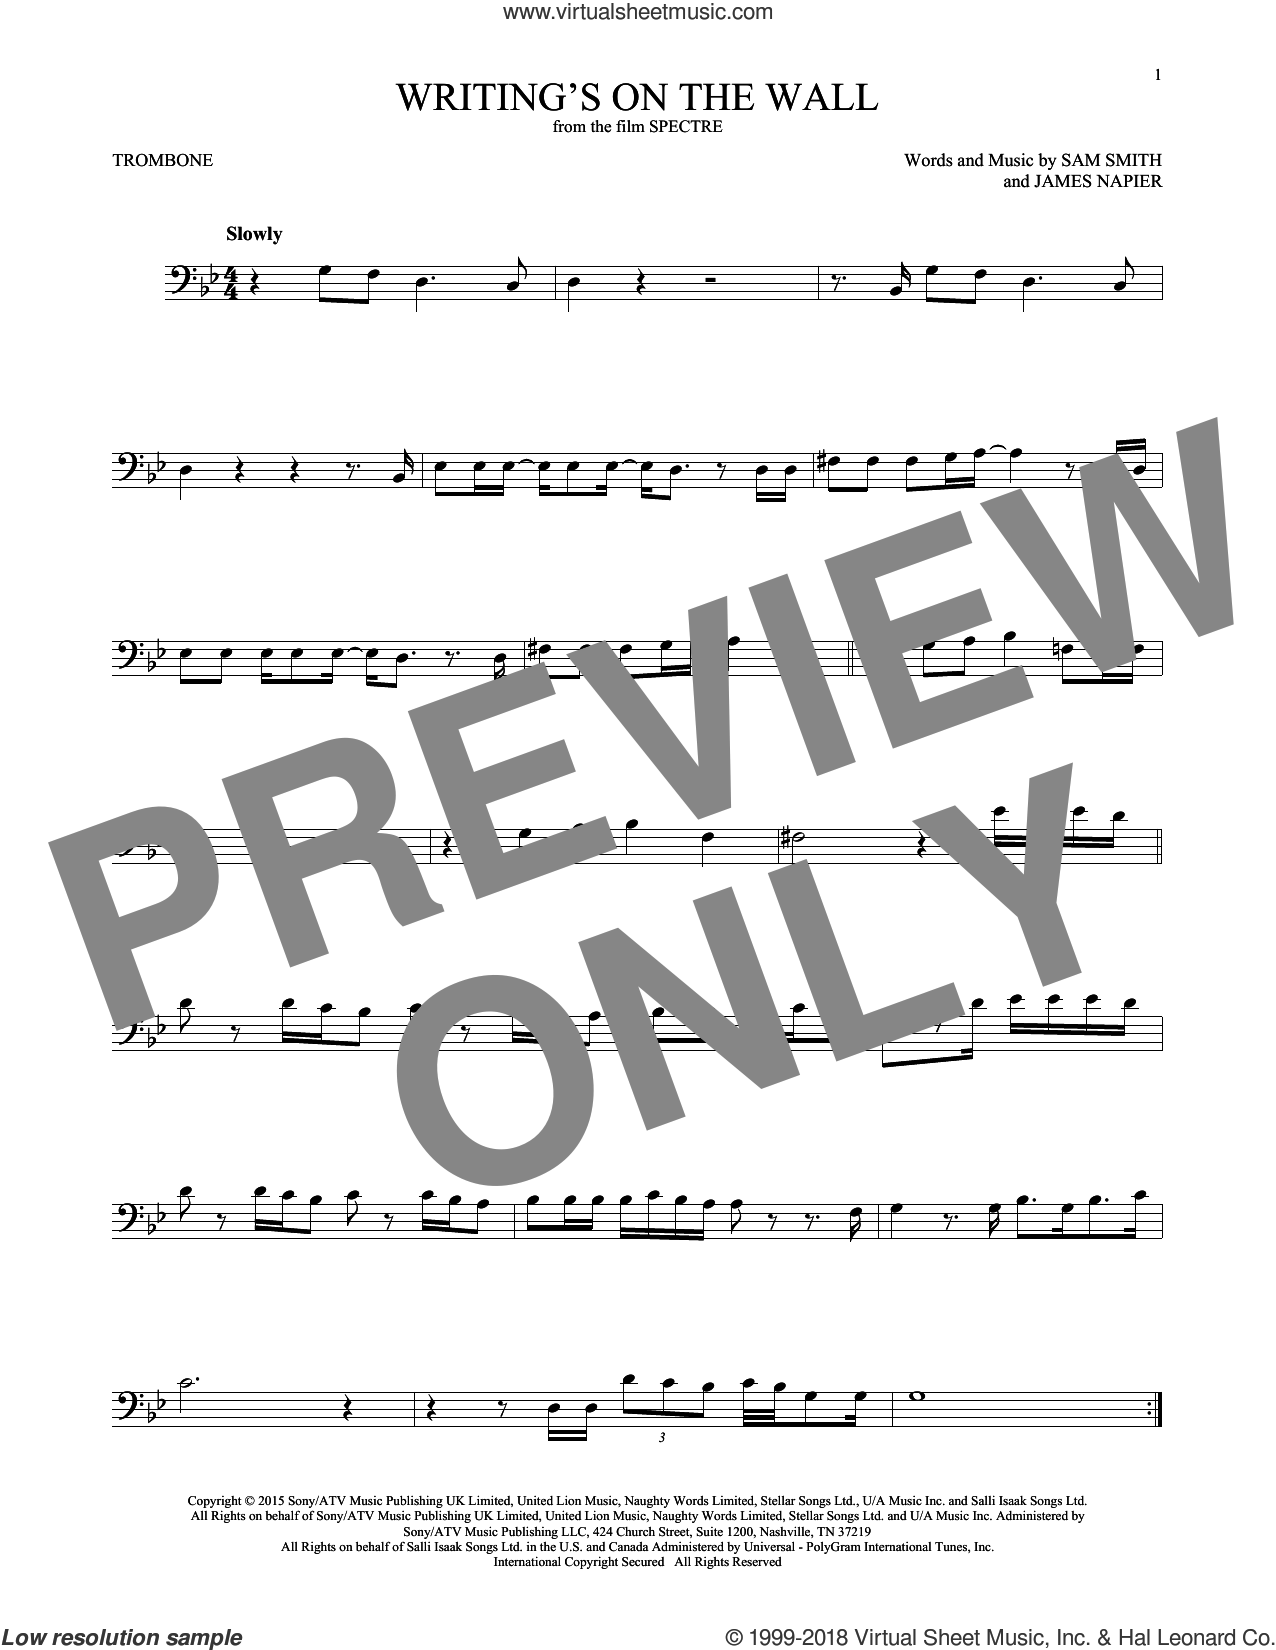 Writing's On The Wall sheet music for trombone solo by Sam Smith and James Napier, intermediate skill level